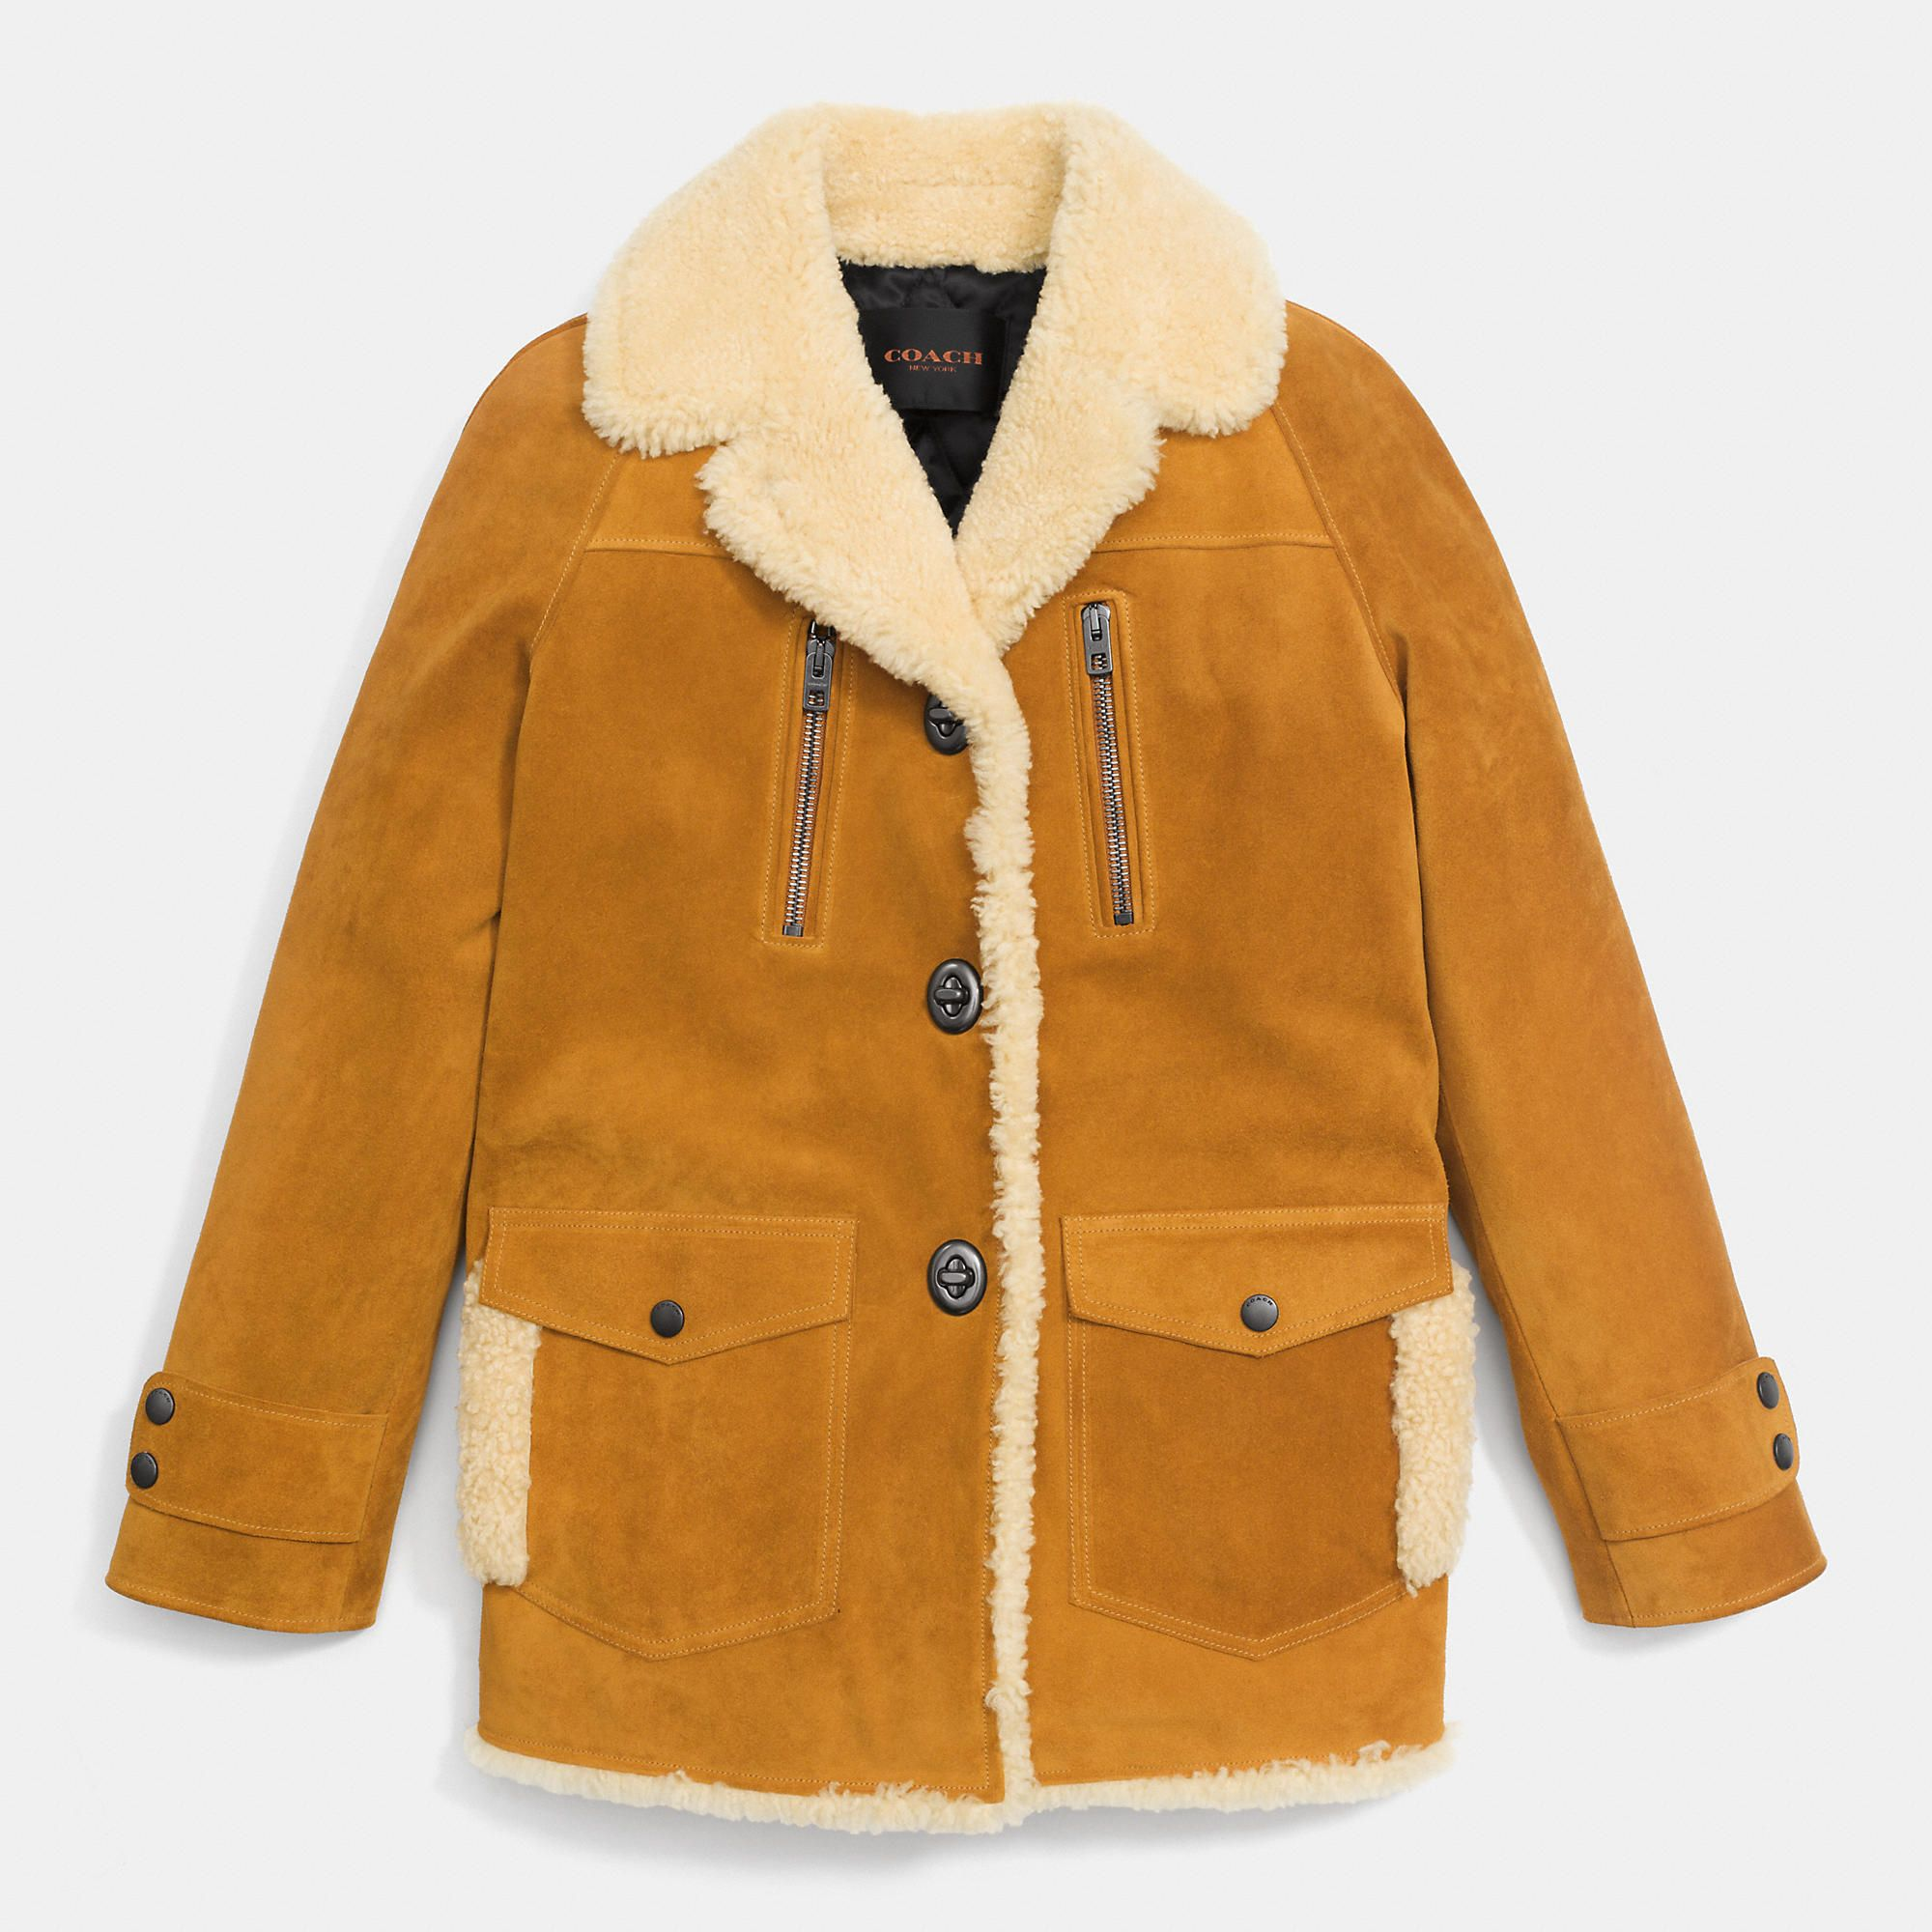 e7bfb25a18fea Coach   Yellow Drifter Jacket   Lyst   Coach   Jackets, Suede jacket ...